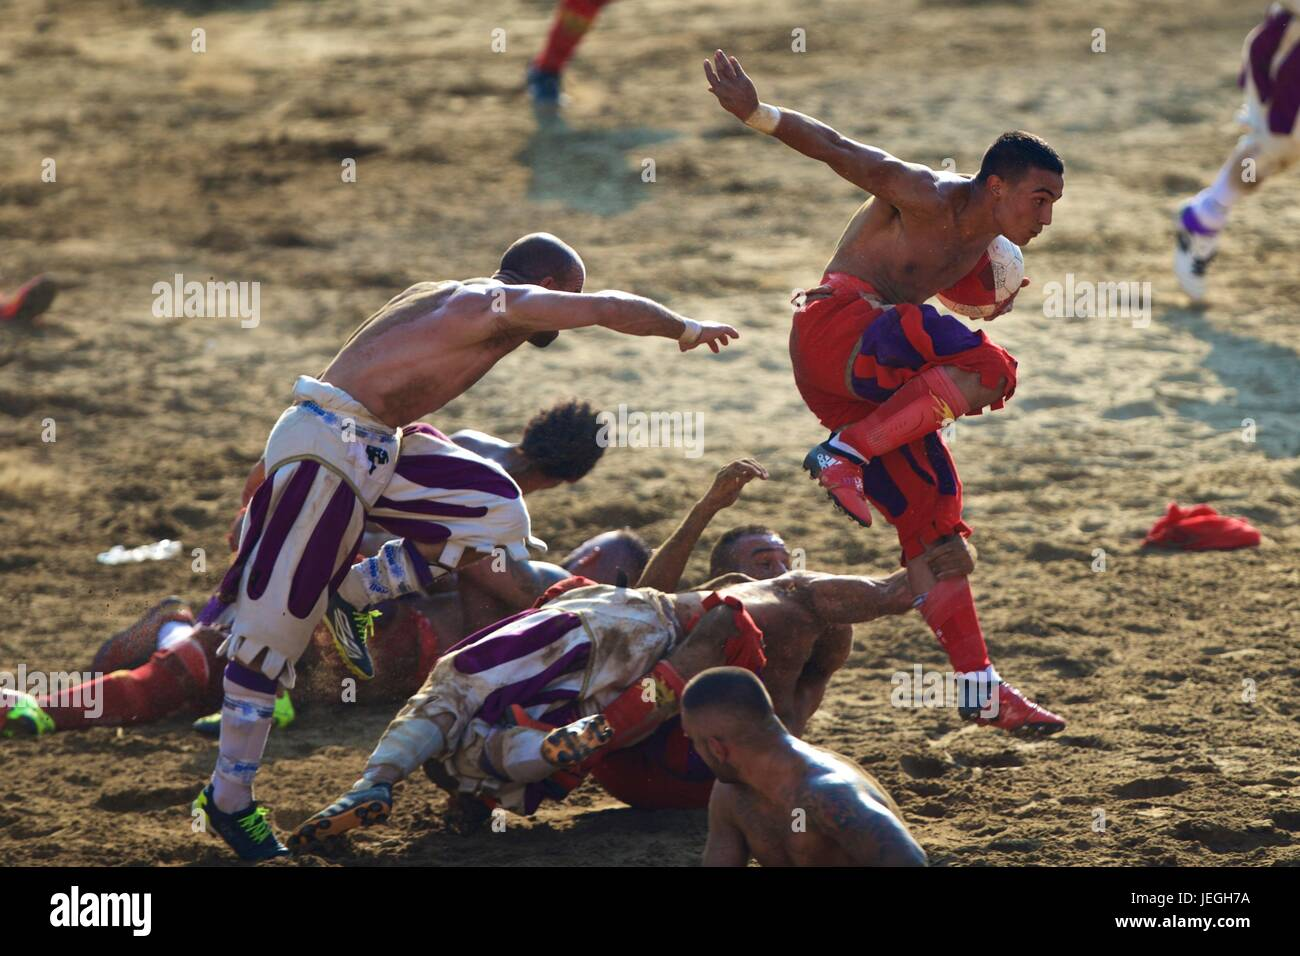 Florence, Italy. 24th June, 2017. Players compete during the final match of the Calcio Storico Fiorentino traditional Stock Photo